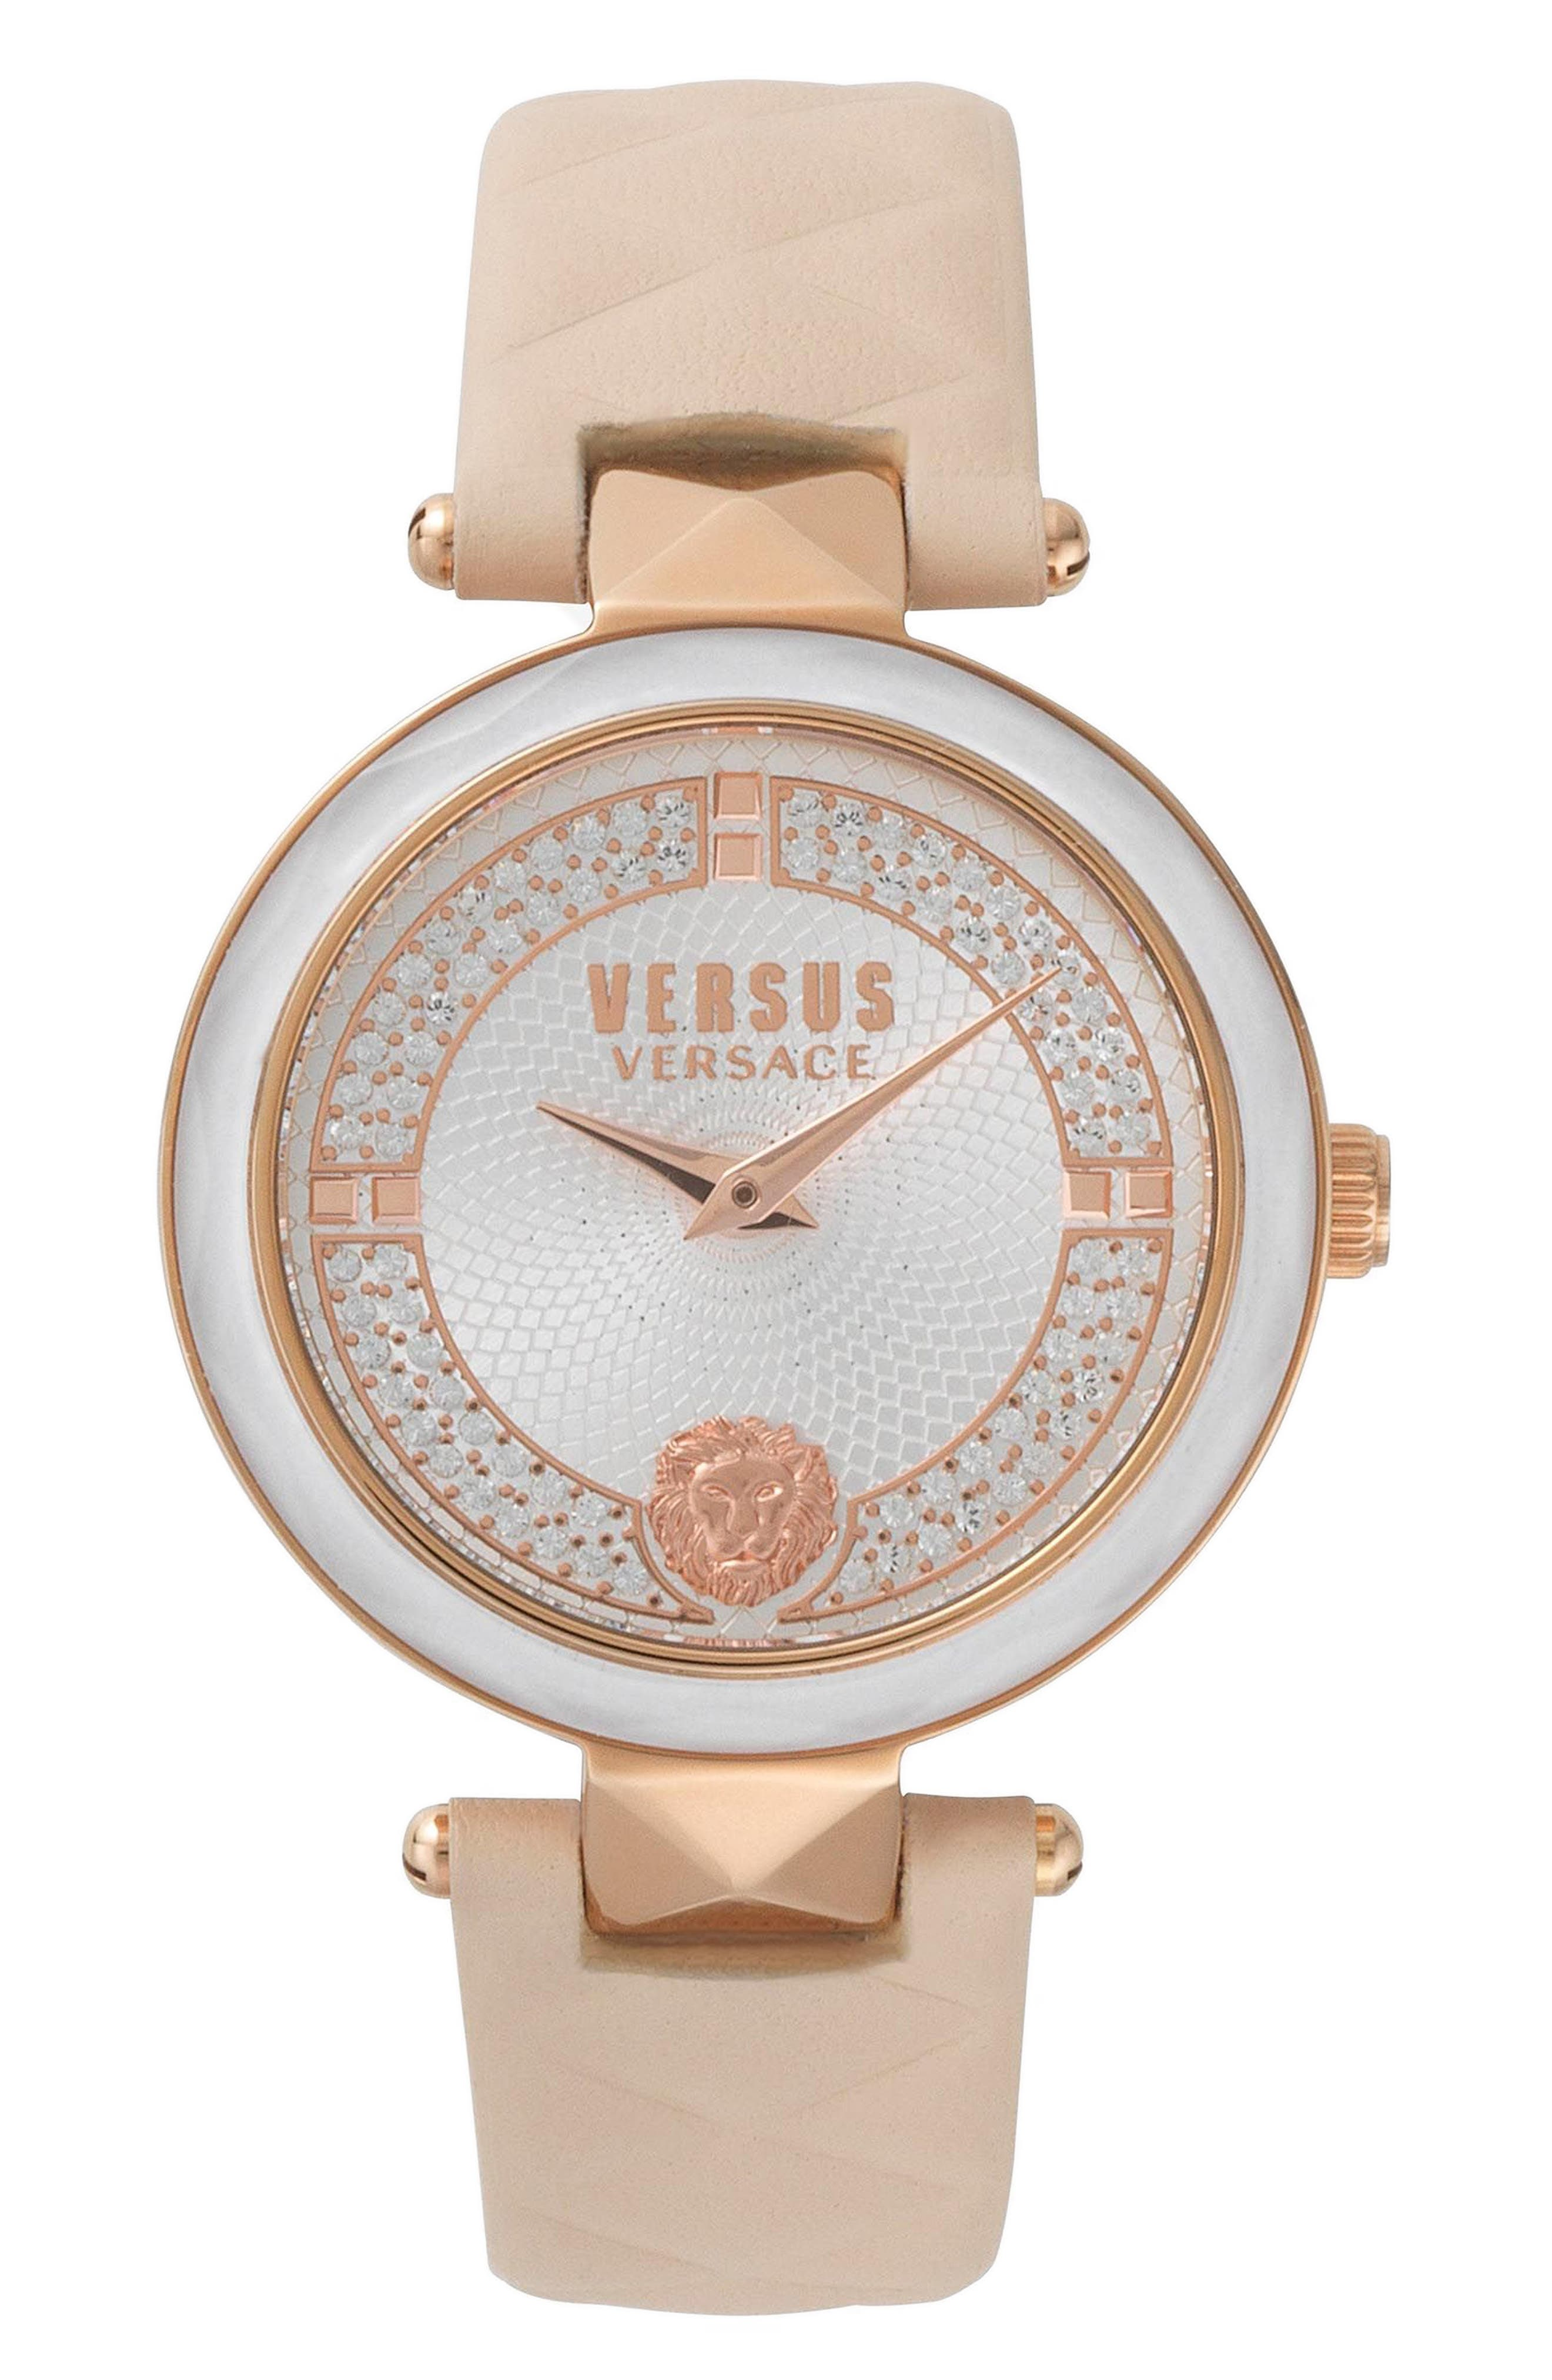 VERSUS by Versace Covent Garden Leather Strap Watch,                         Main,                         color, Beige/ White/ Rose Gold